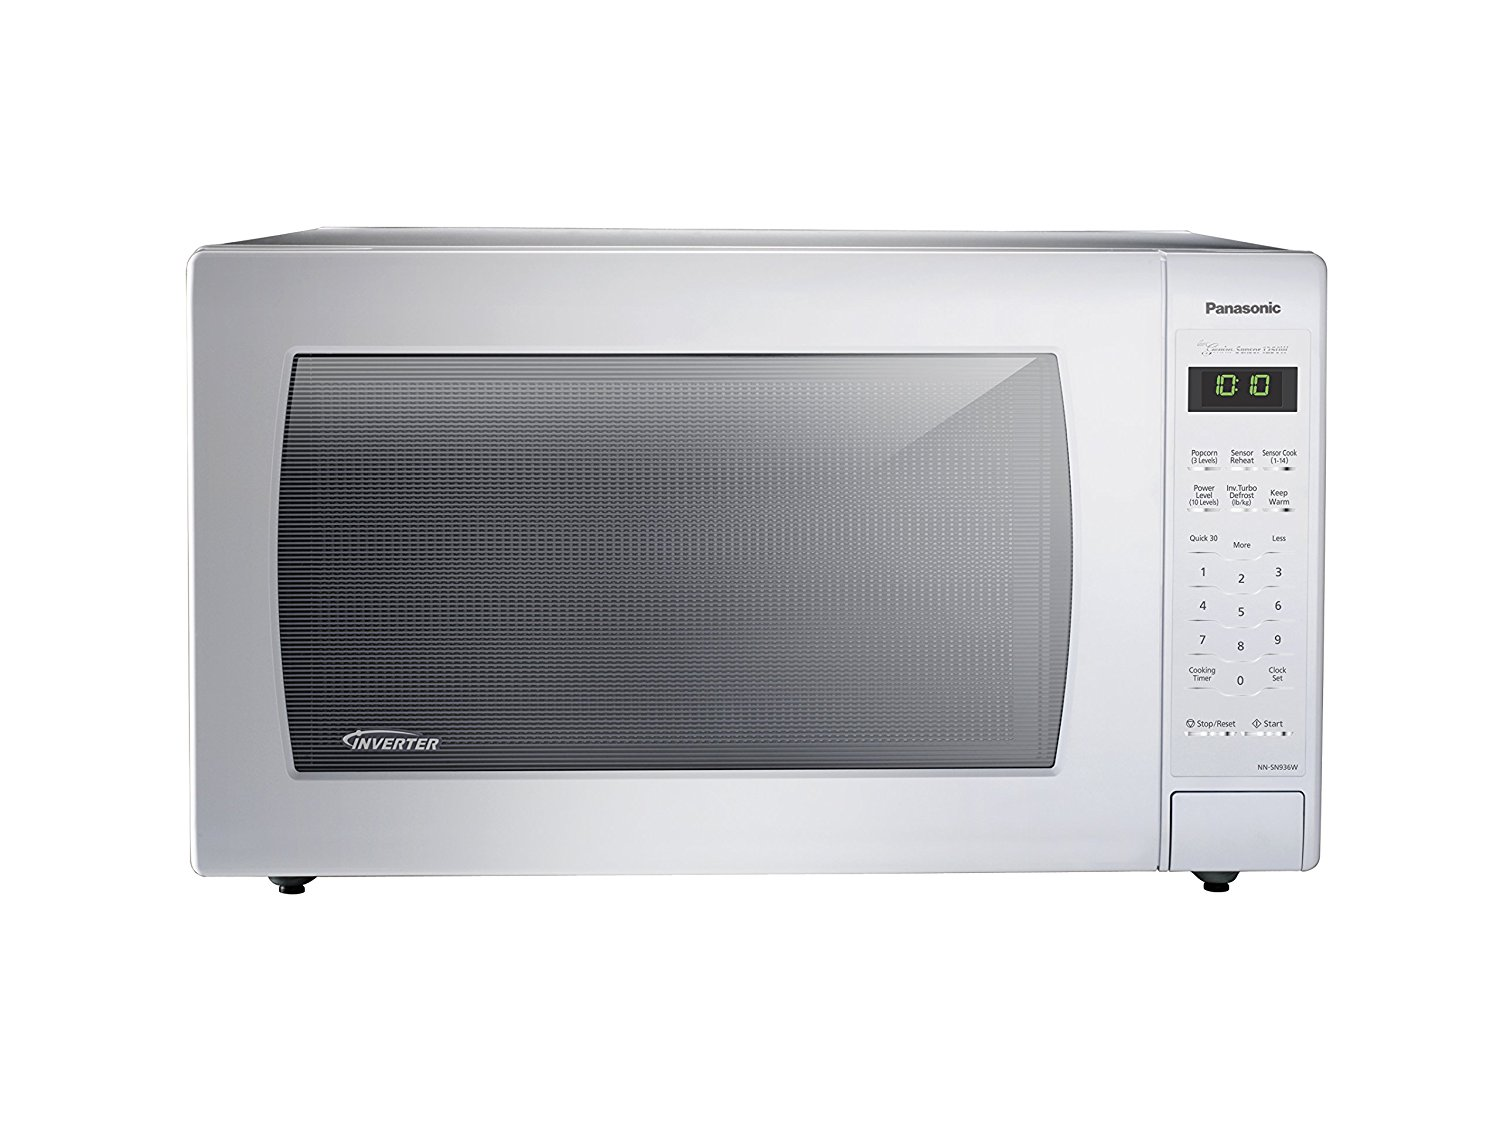 Panasonic NN-SN936W 2.2 Cu. Ft. 1250W Countertop Microwave with Inverter Technology